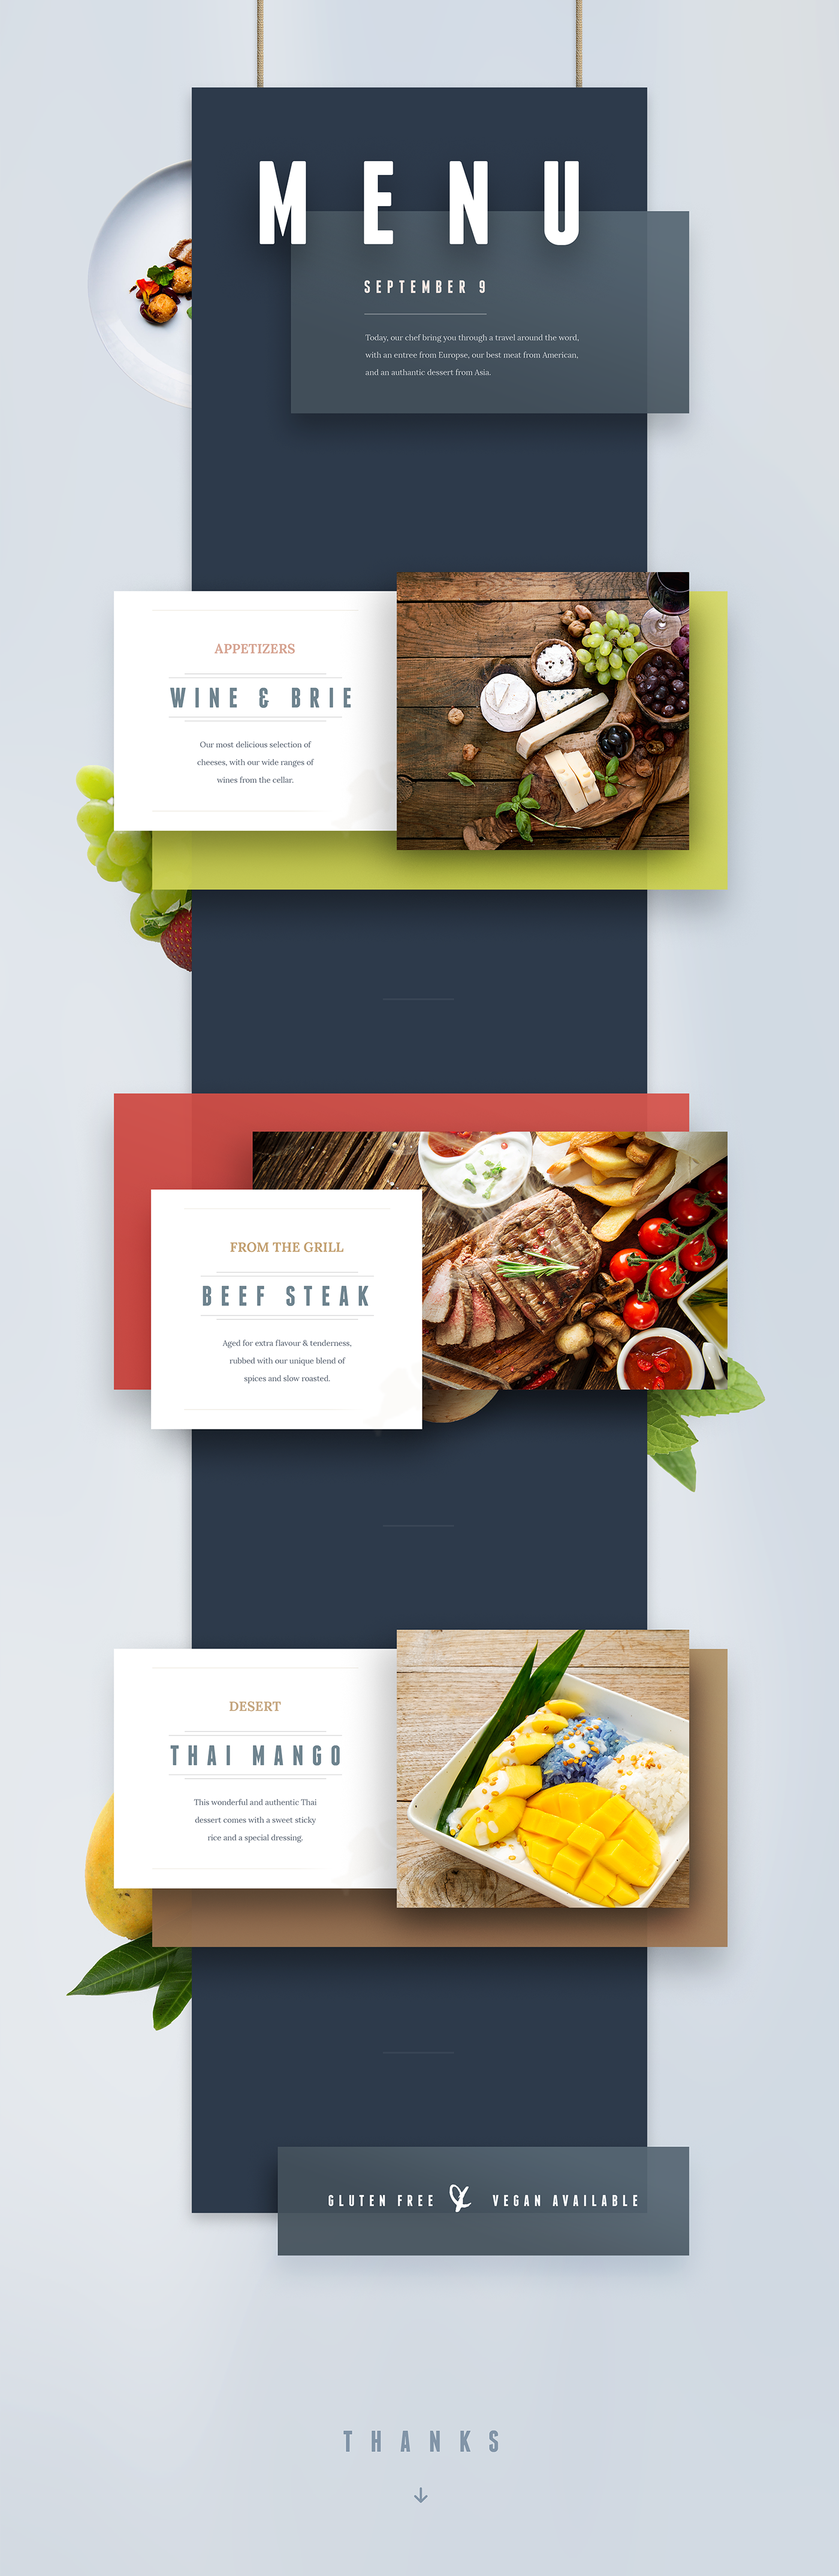 Best Infographic Designs For 2016 I Like How This Layout Creates A 2 D Effect Web Layout Design Web App Design Web Design